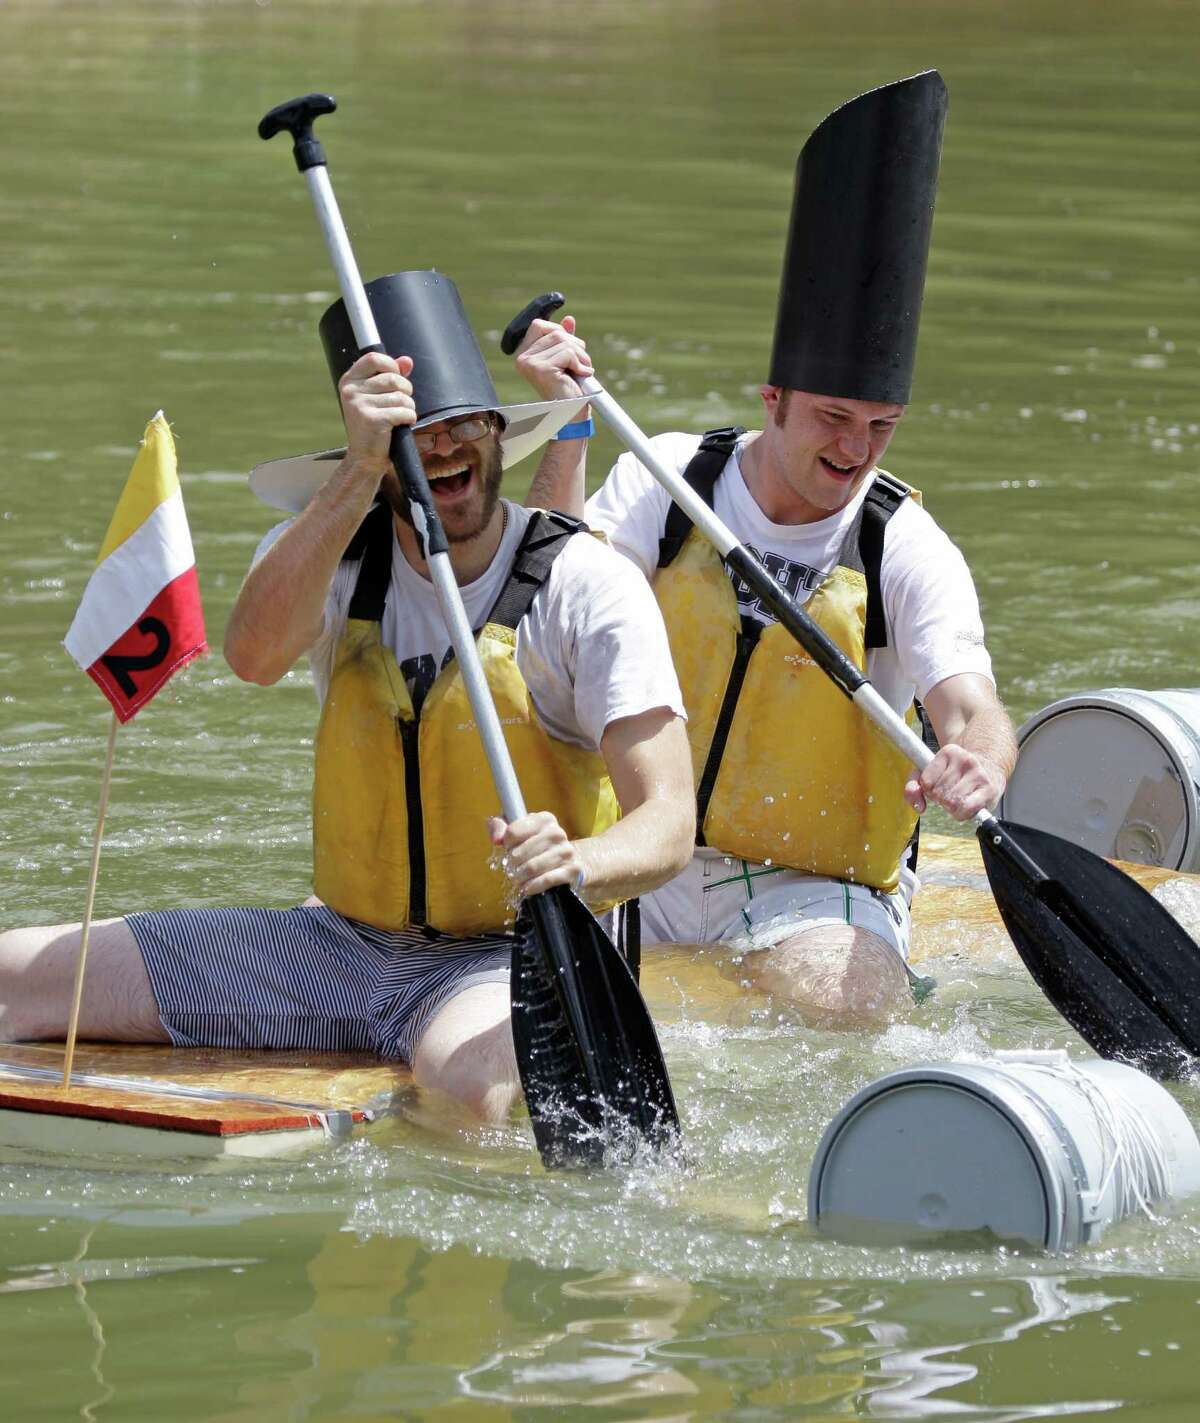 Trevor Best, left, and Jason Slater, right, work to paddle across the bayou during the Anything That Floats competition at Sesquicentennial Park Saturday, June 22, 2013, in Houston. Organized by rdAgents, a young professionals network affiliated with the Rice Design Alliance, the participants have a few hours to build a device to float a short distance across Buffalo Bayou with discarded building materials. The boats must be able to support two passengers.